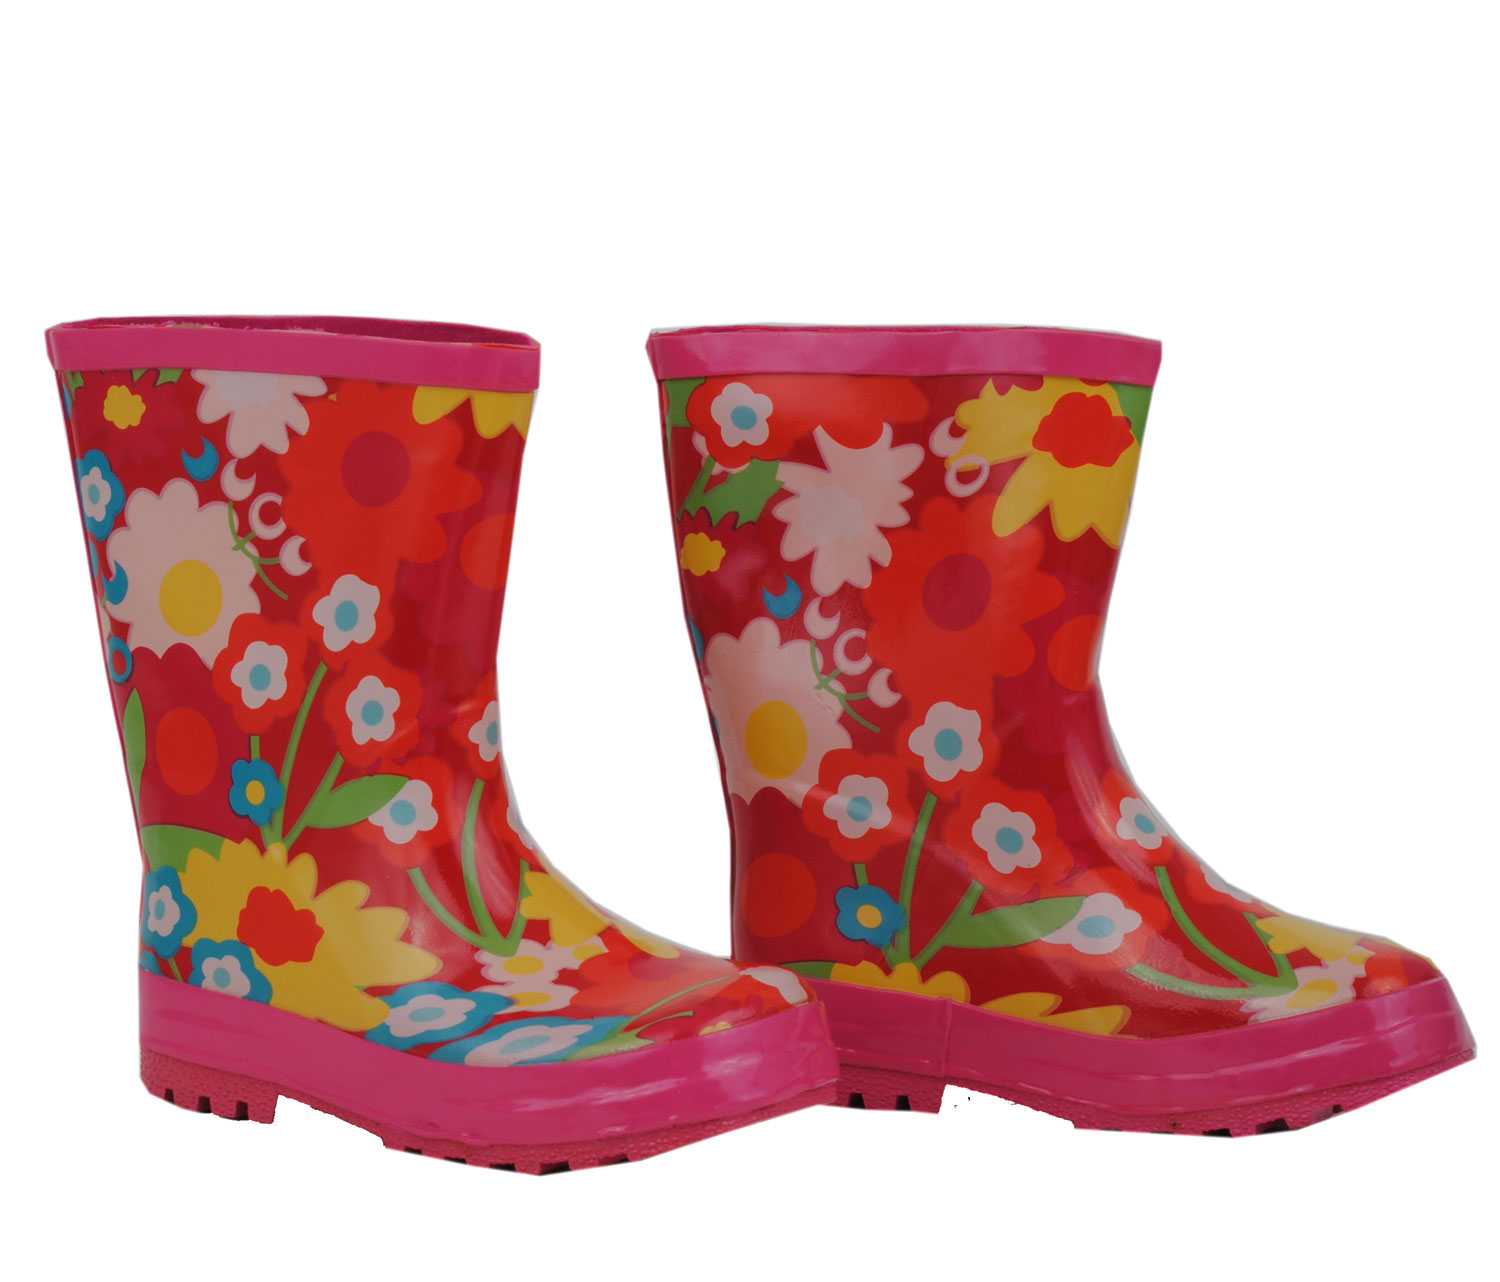 Shop for kids rain boots online at Target. Free shipping on purchases over $35 and save 5% every day with your Target REDcard.